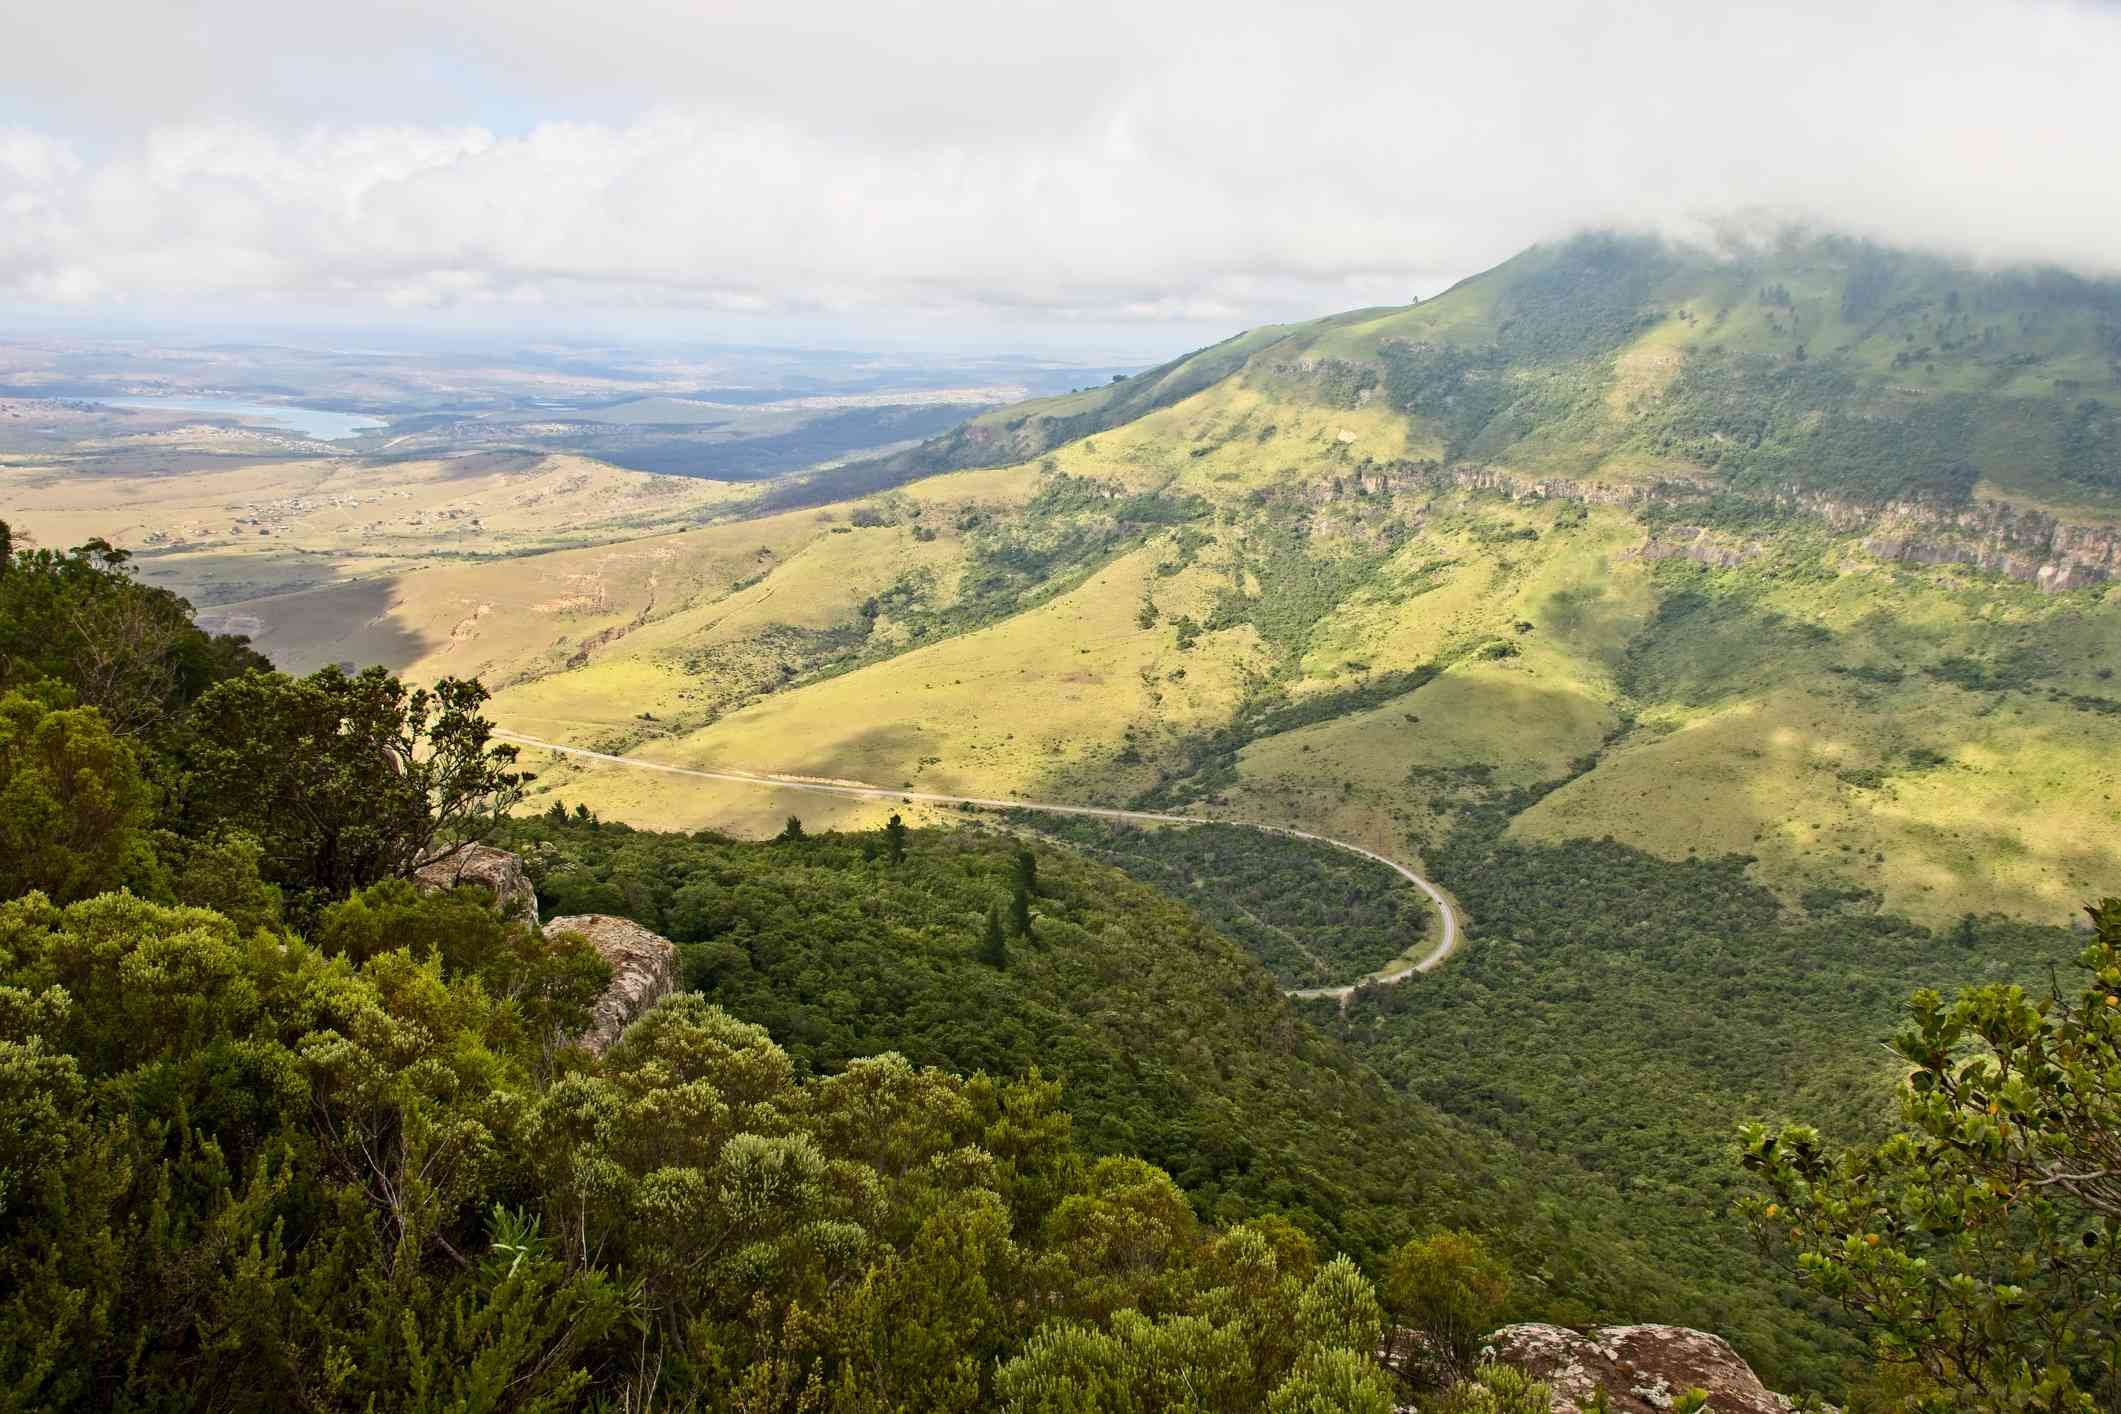 The edge viewpoint in Hogsback, South Africa. This is a popular tourist attraction.